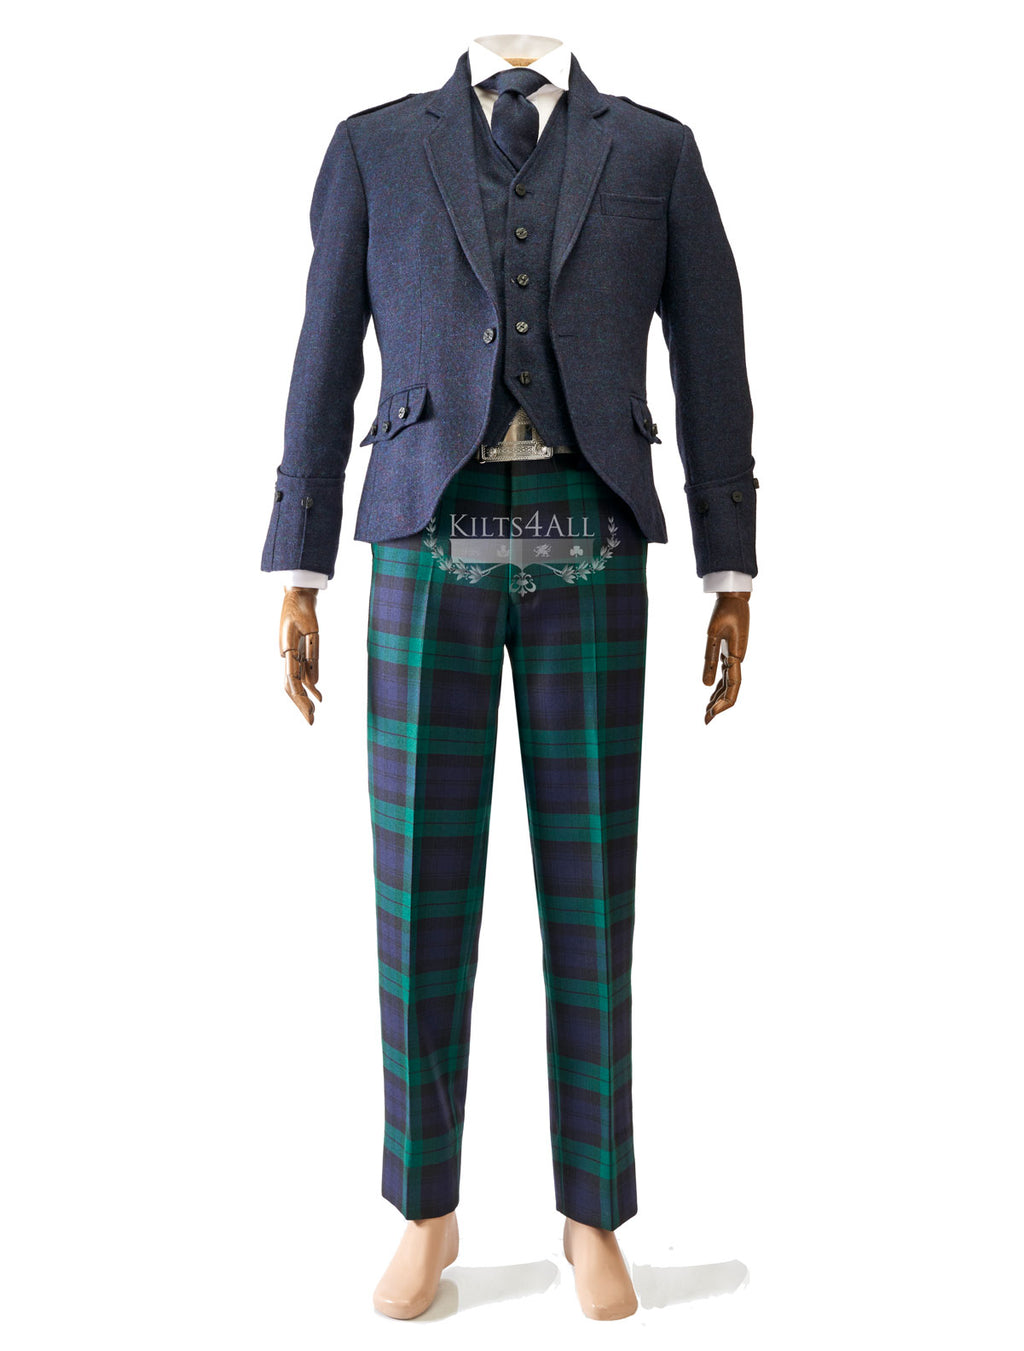 Mens Scottish Tartan Trews Outfit to Hire - Lightweight Navy Tweed Argyll Jacket & Waistcoat